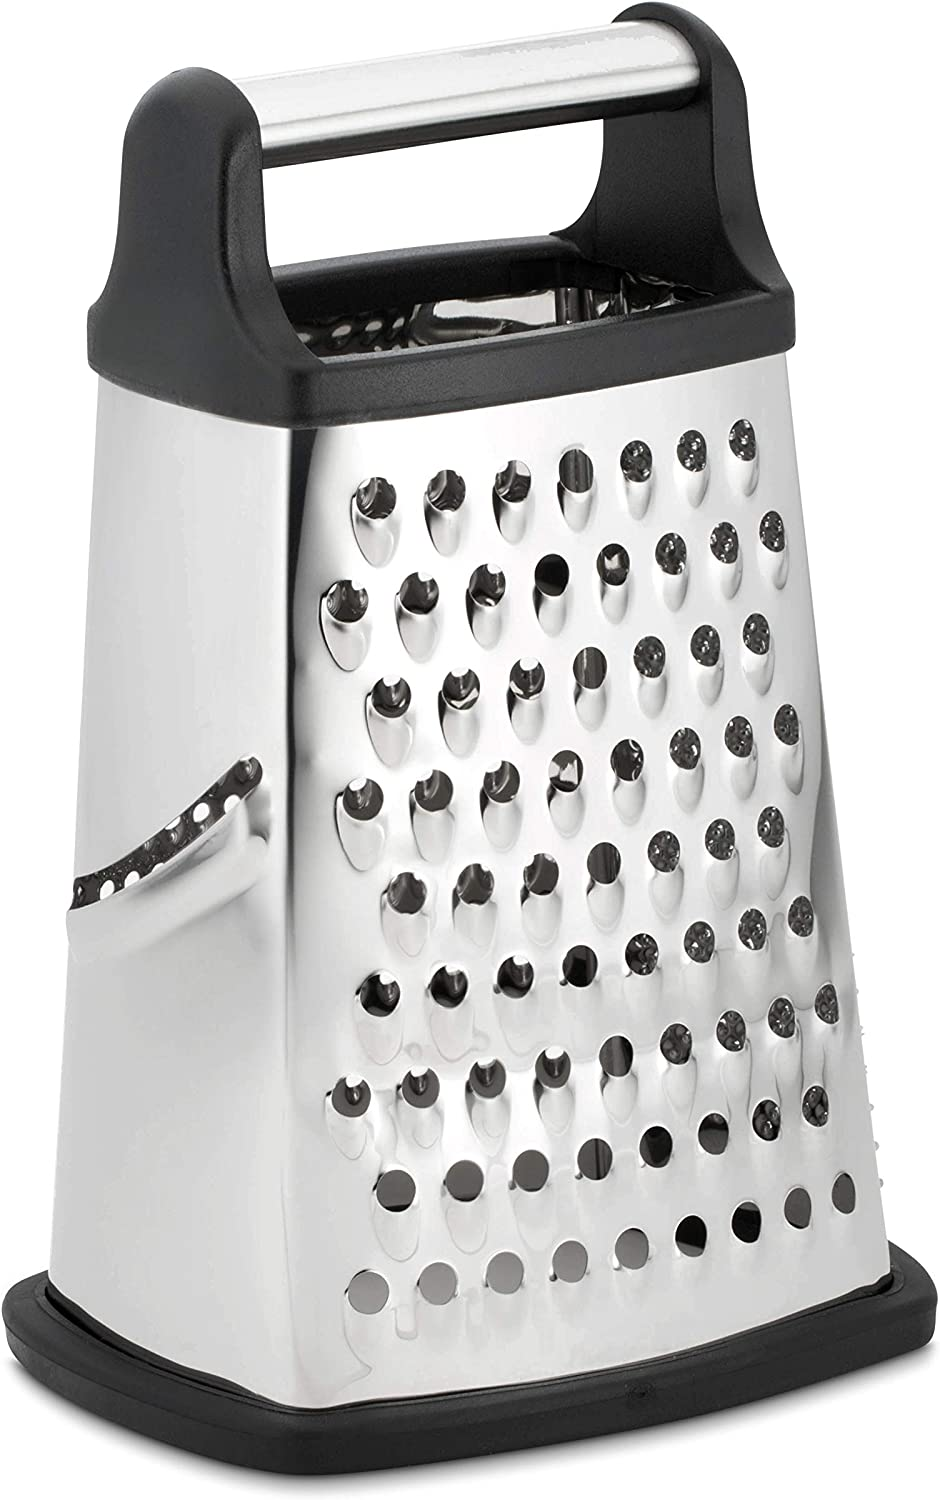 Professional Box Grater, Stainless Steel with 4 Sides, Best for Parmesan Cheese, Vegetables, Ginger, XL Size, Black